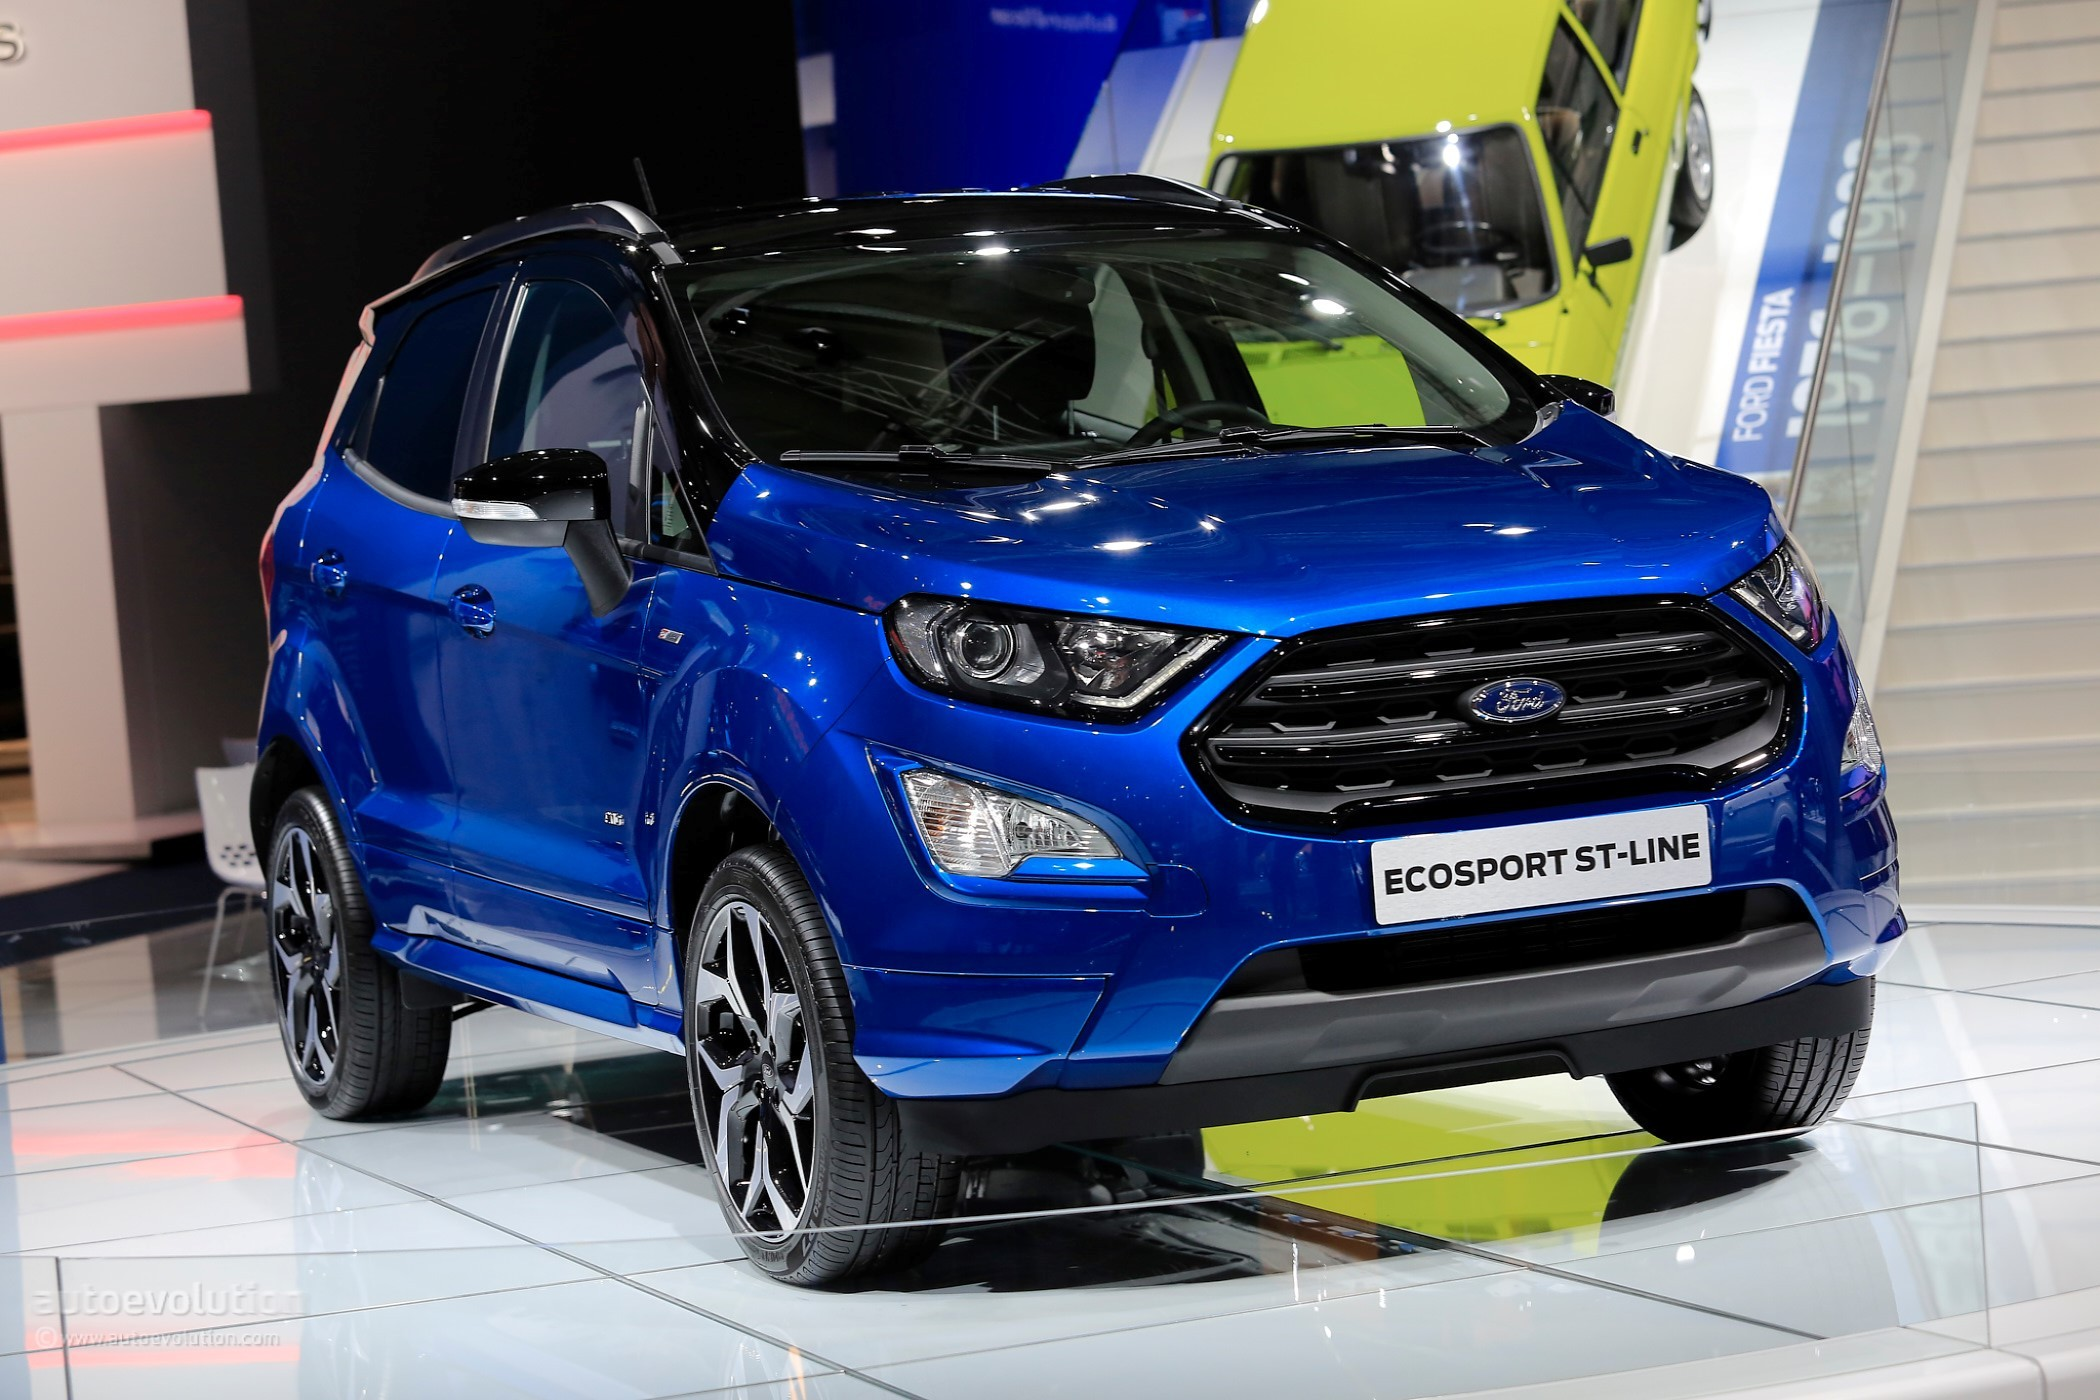 Used Ford Edge For Sale >> Ford Might Assemble EcoSport in Romania for European Market - autoevolution